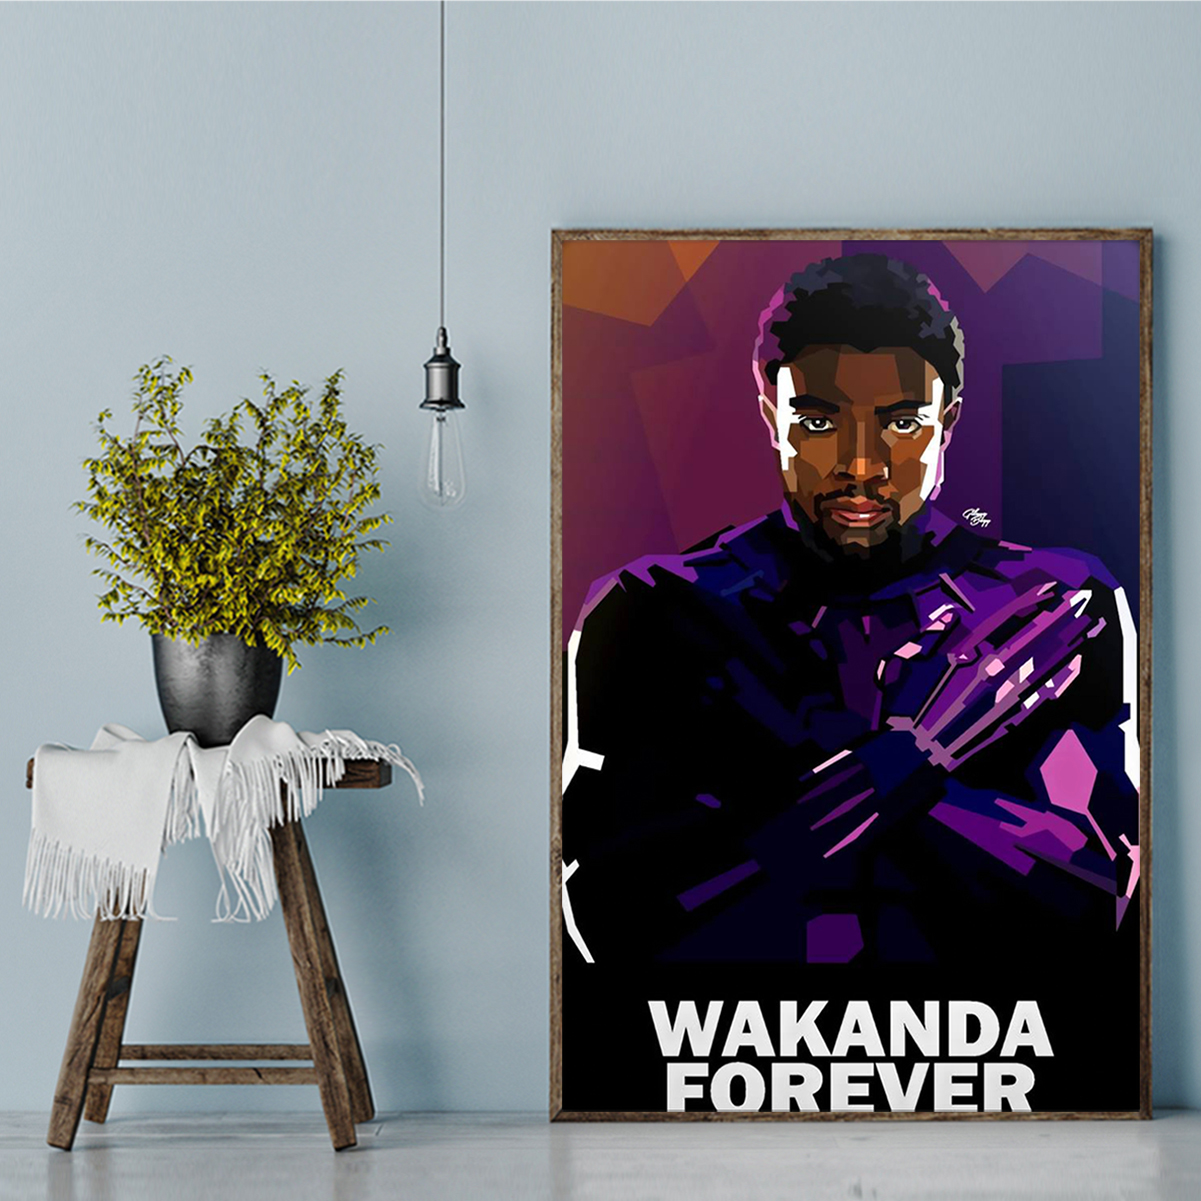 Wakanda forever poster A1